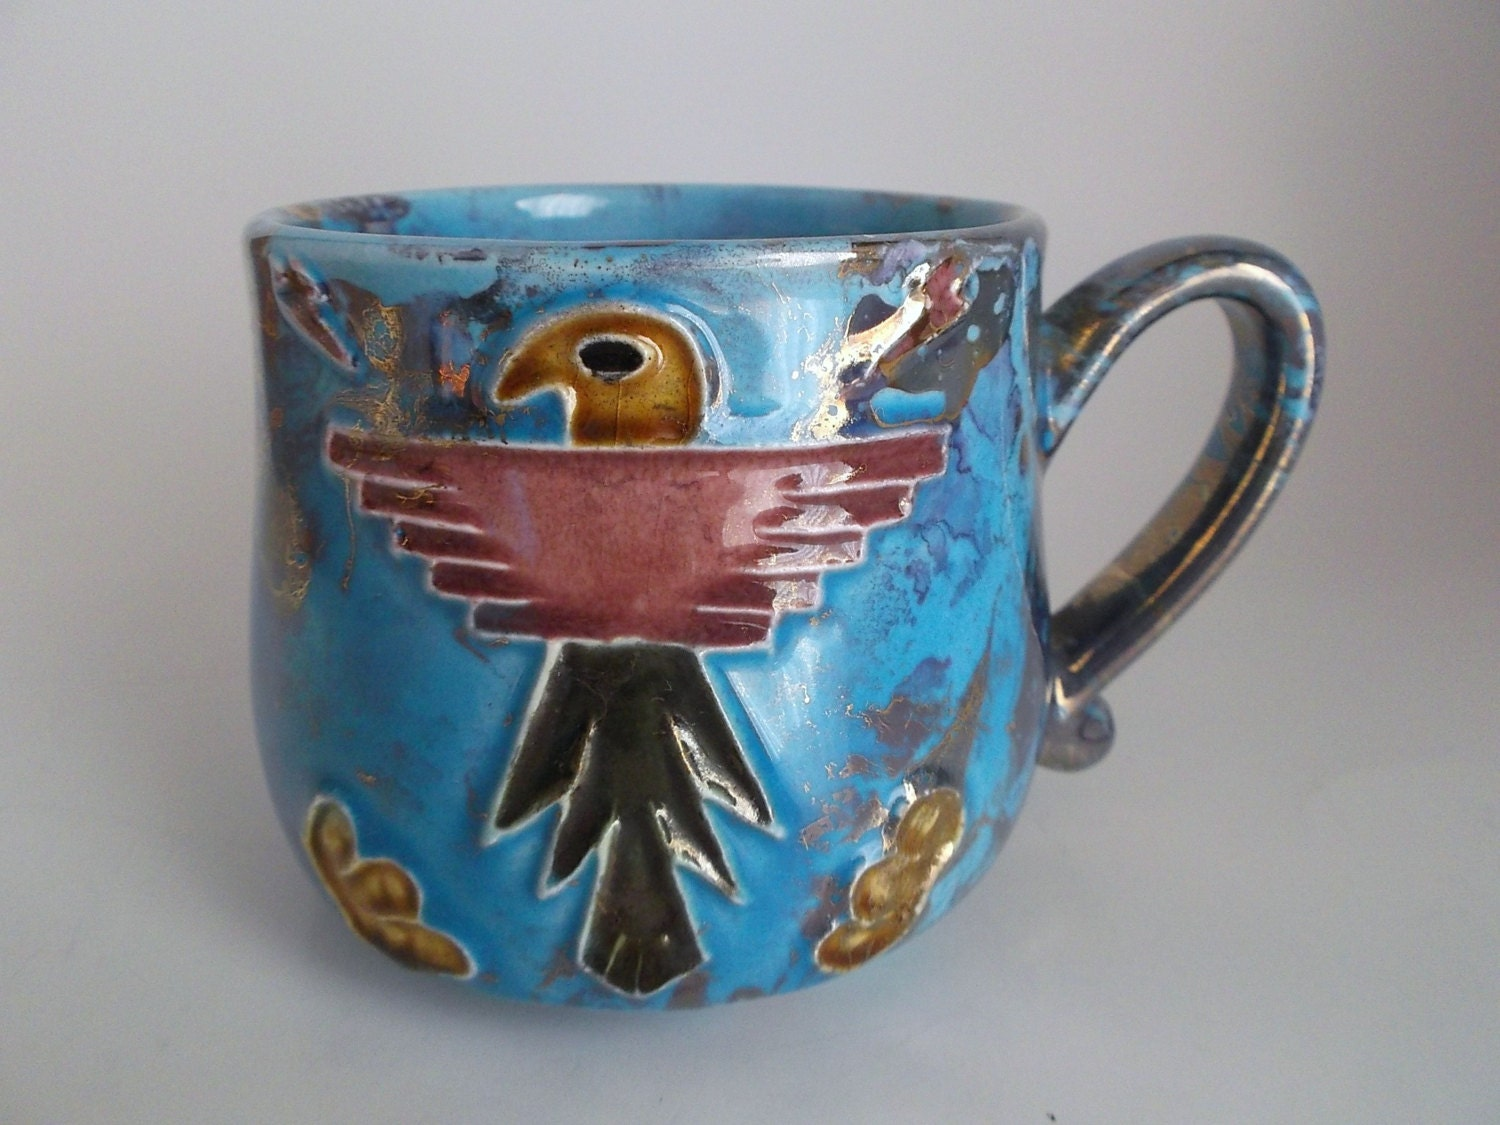 Vintage Ceramic Mug American Eagle Cup Tribal Mug Iridescent Coffee Mug Unique Cup Rare Eagle Mug - theoldtimers